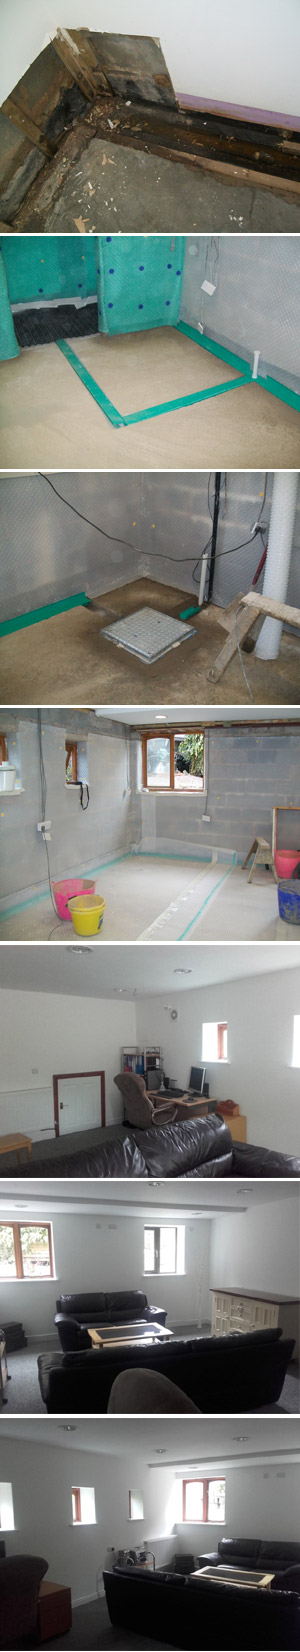 Case Study Image: Basement Restoration After Flooding